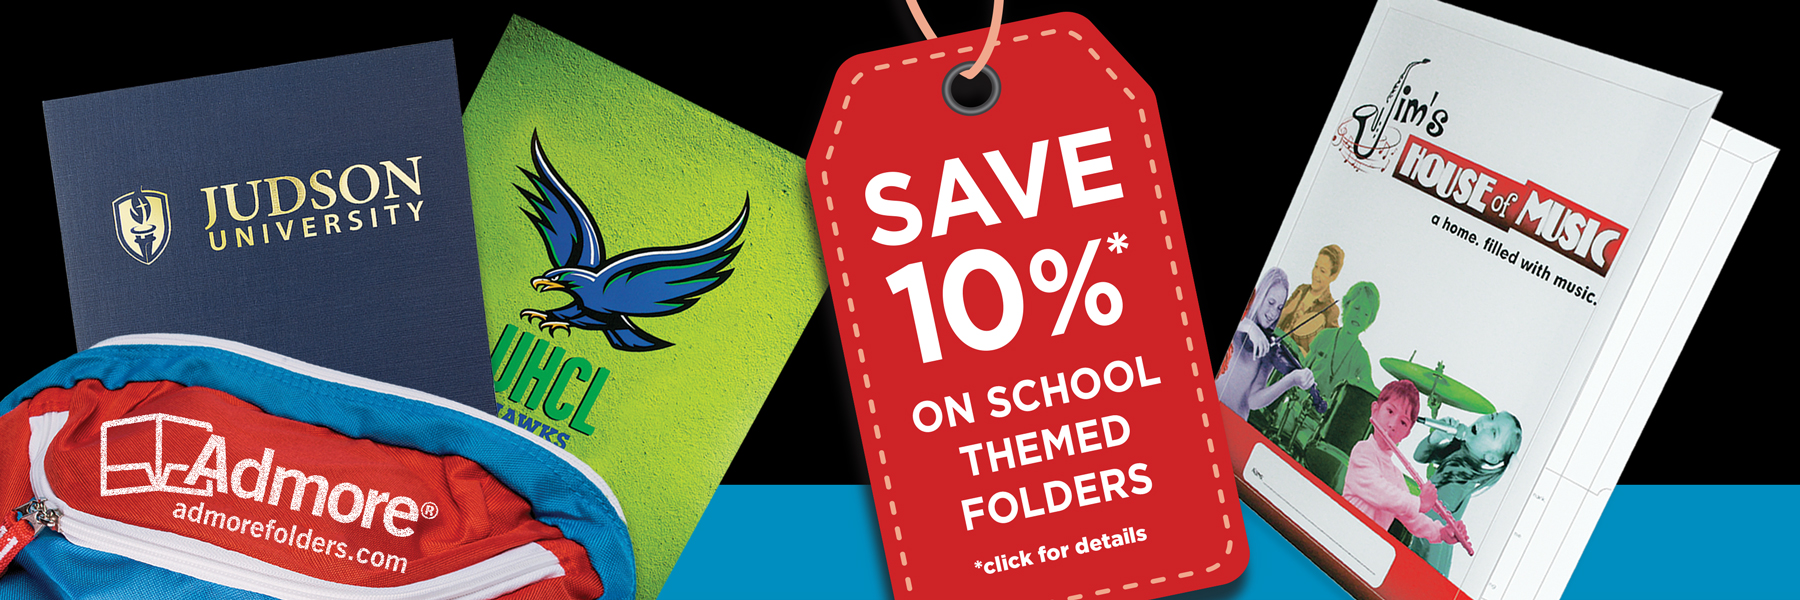 Save 10% on School Themed Folders from Admore